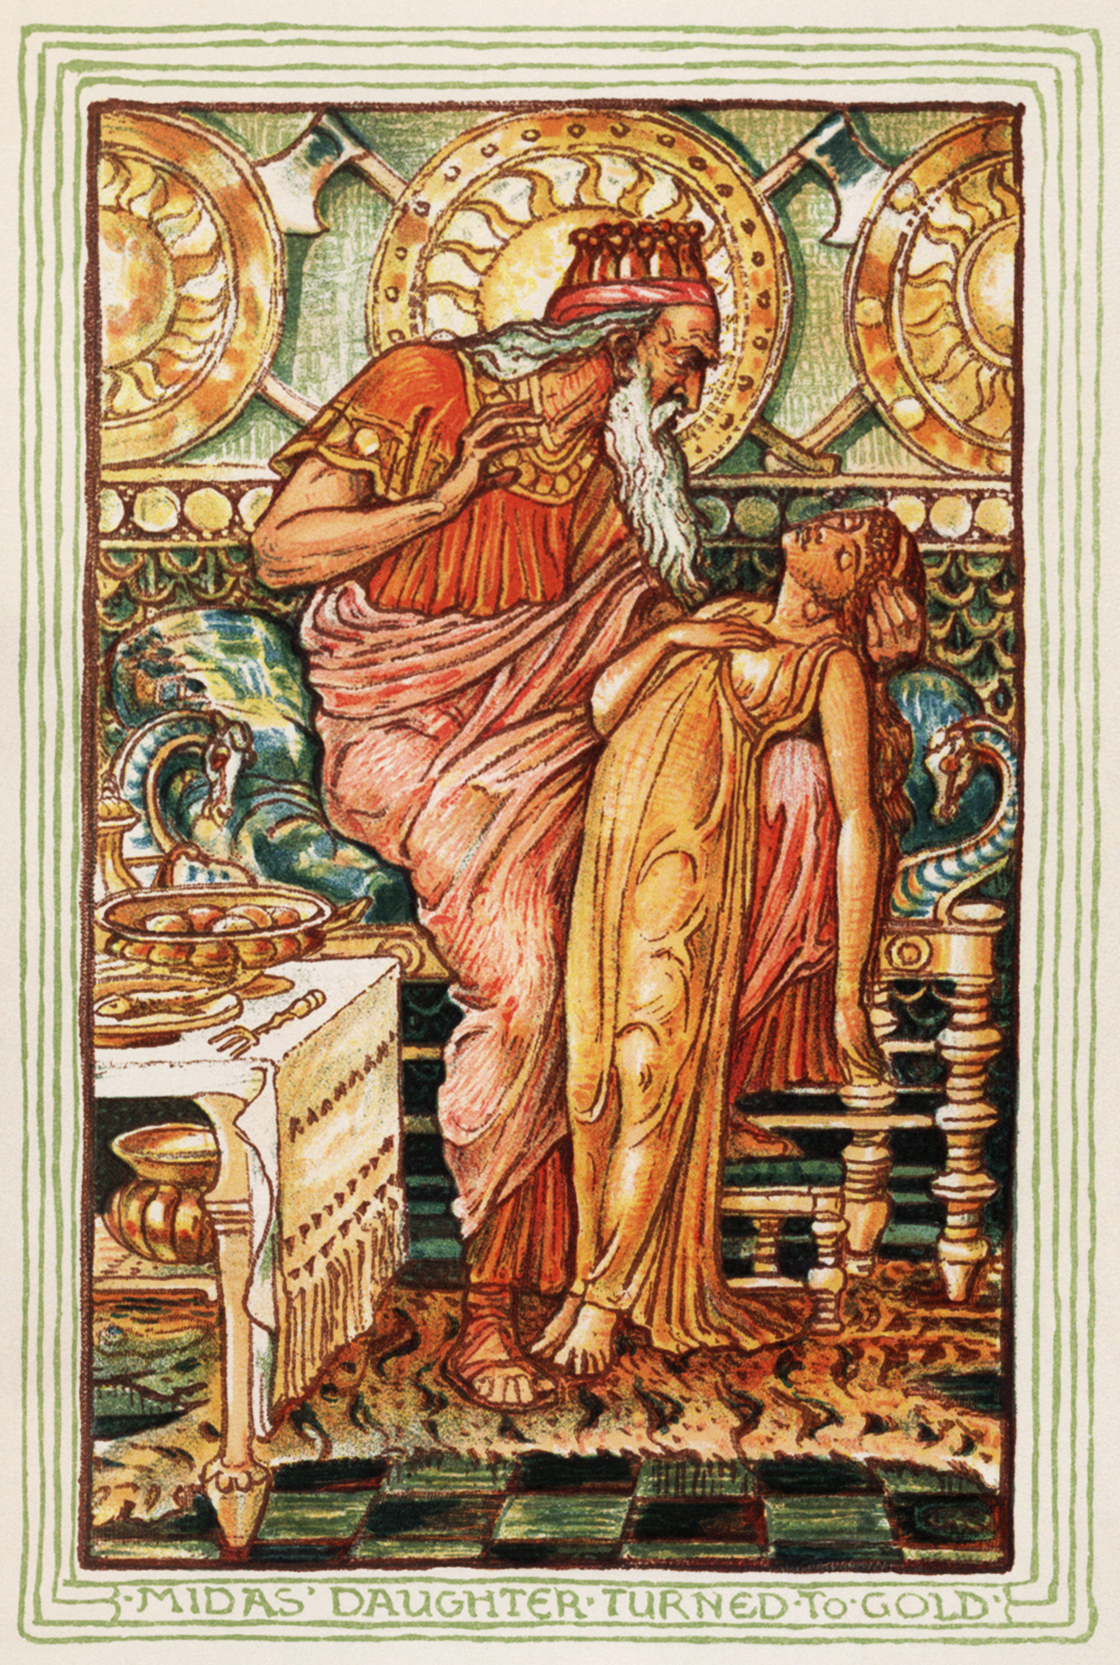 WholeDude - Whole Expose: In Greek Mythology, King Midas of Phrygia was granted the power of turning everything that he touches into gold. When even his food became gold, his daughter turned into gold, he washed away his power in the Pactolus River. This story reveals the relationship between Physical Matter and Spiritual Matter.